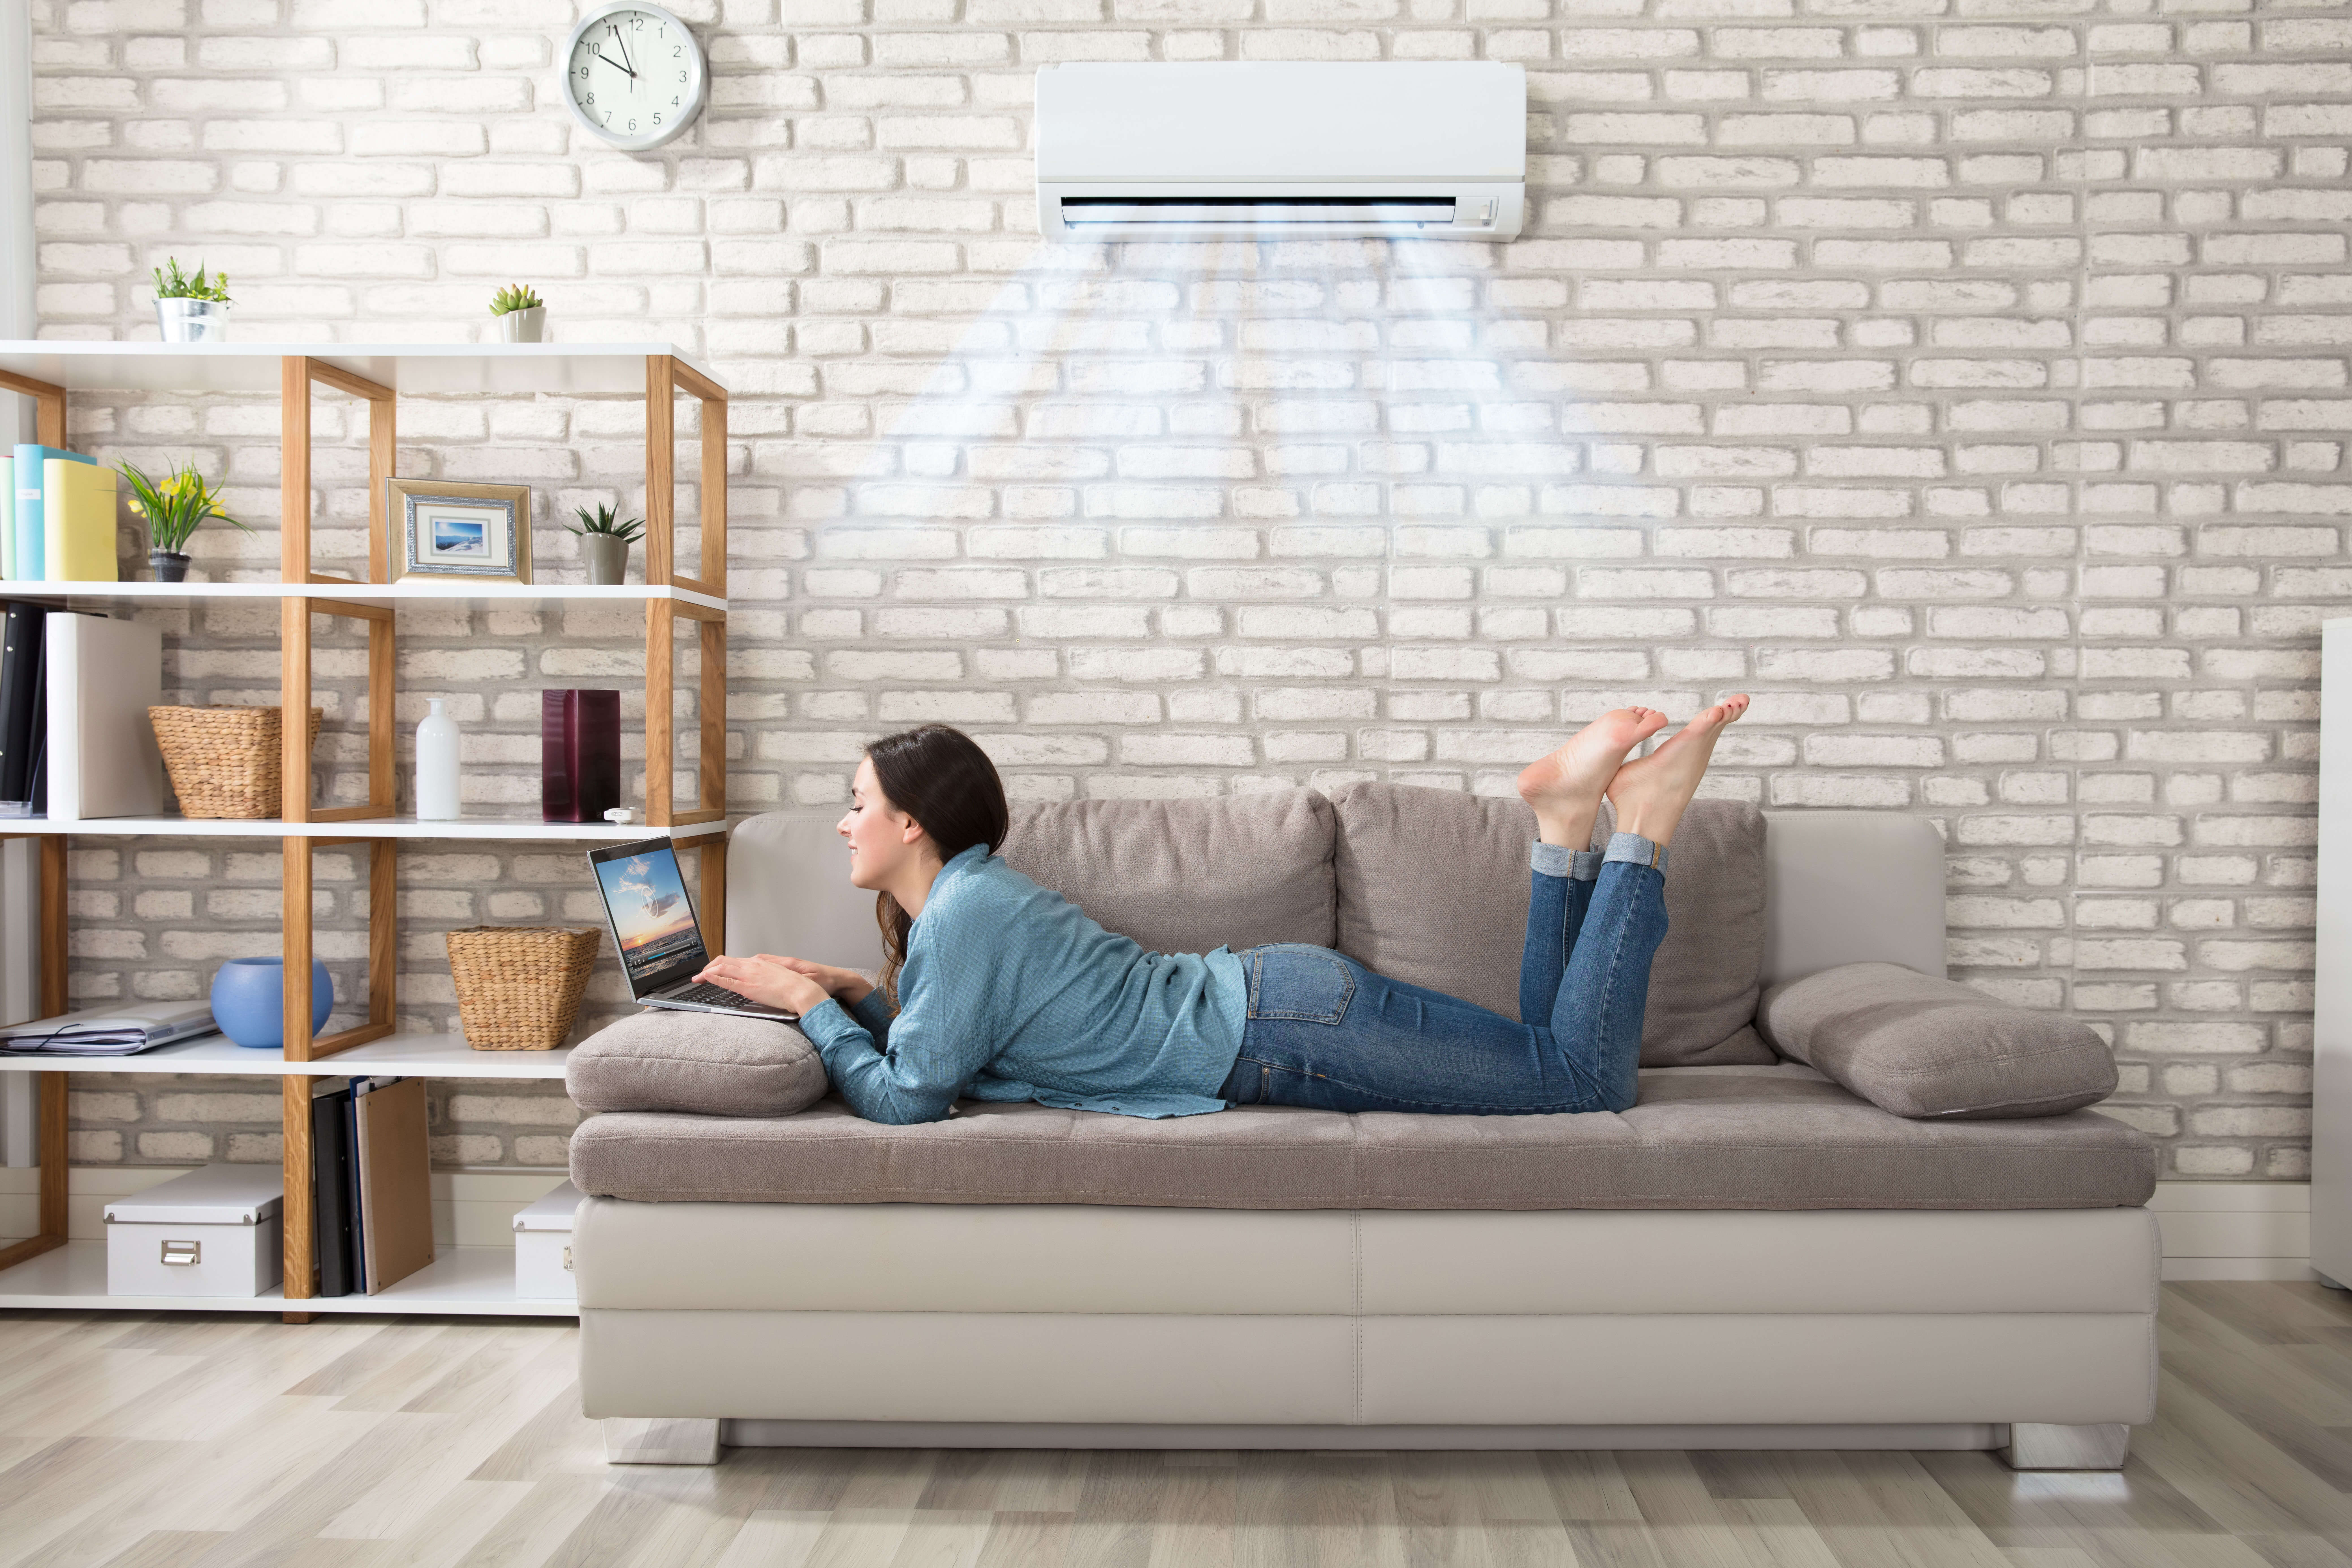 Ductless Ac Price How Much Does A Ductless Ac Cost